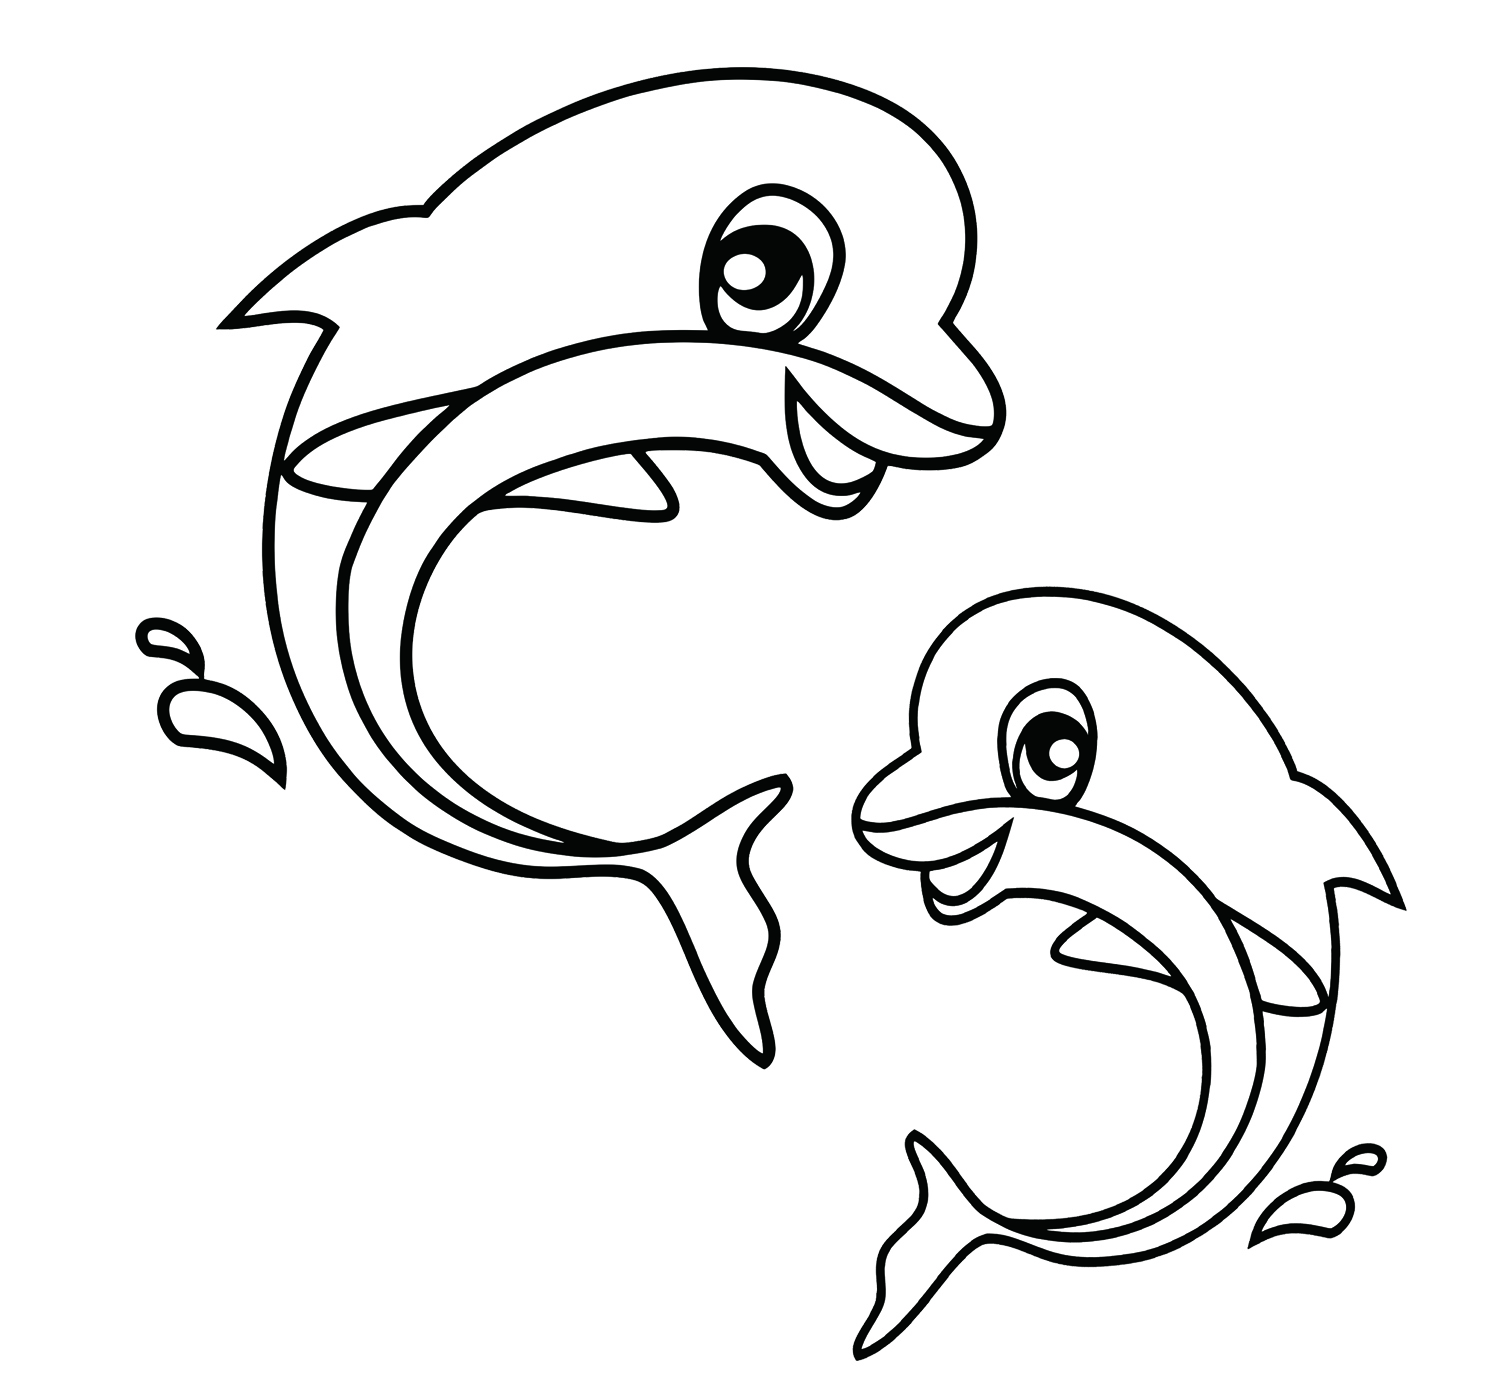 Coloring Book Pages Animals dolphin